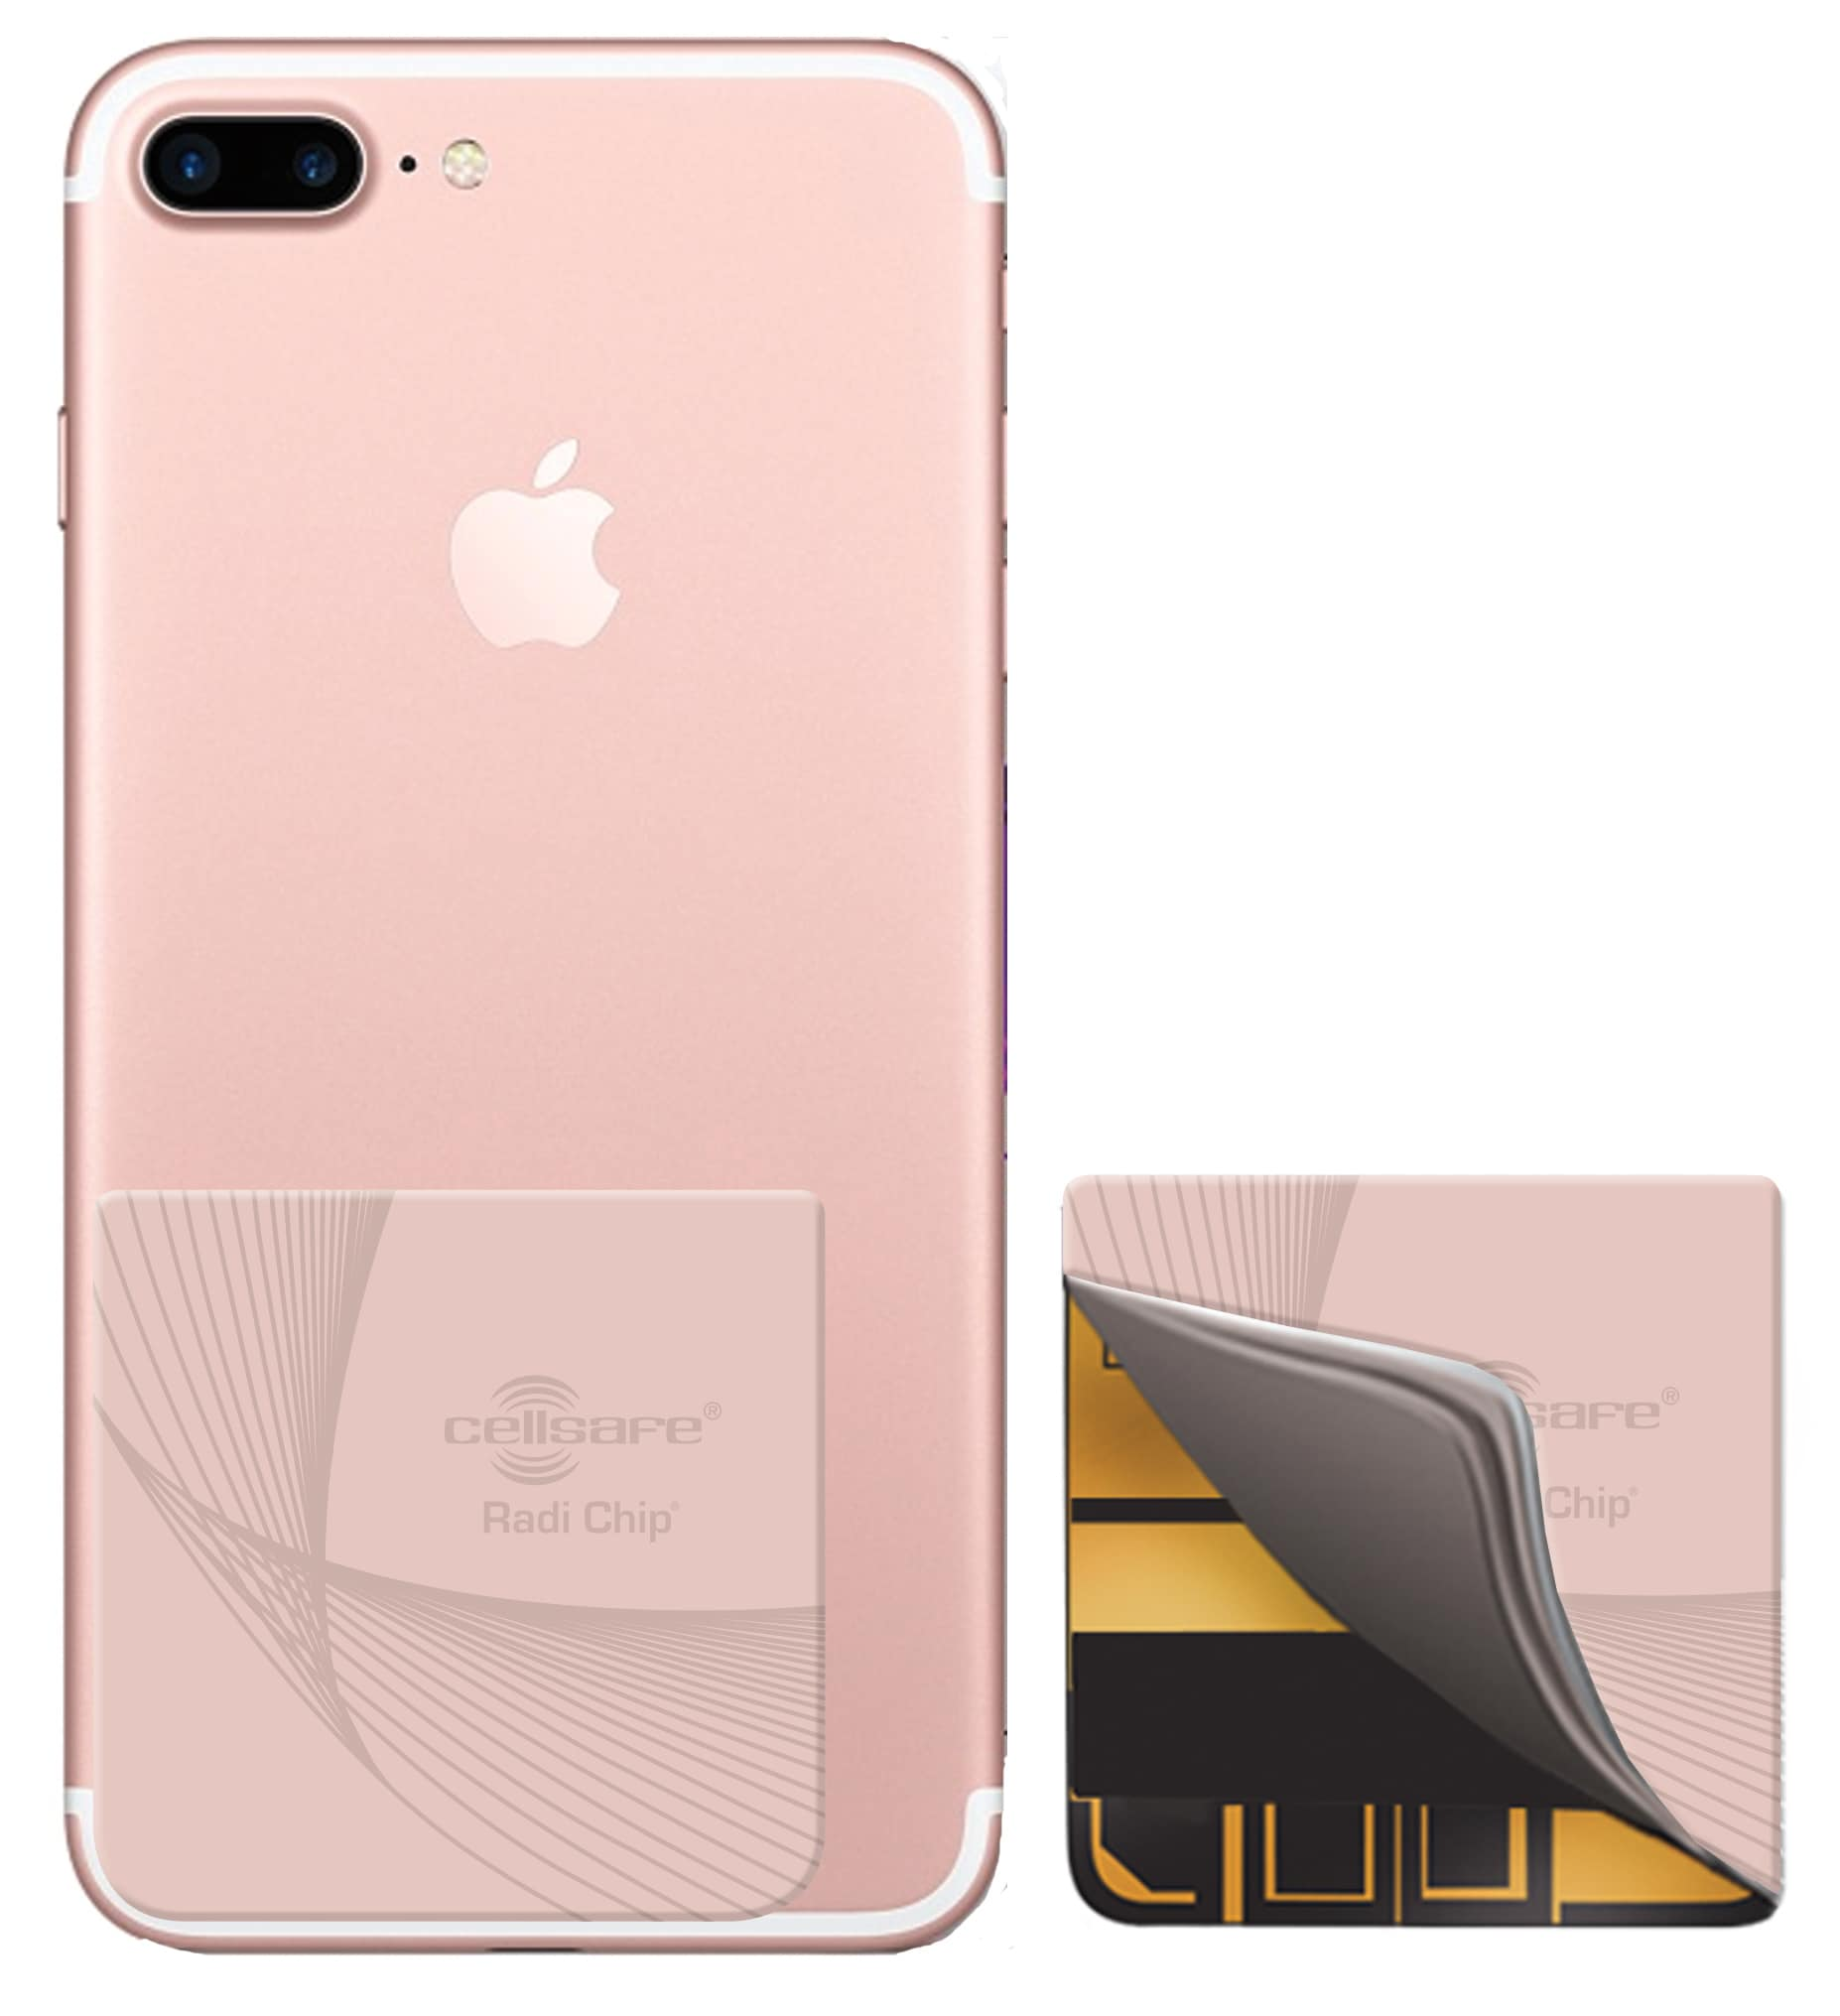 mobile phone radiation reducing cellsafe radi chip for iphone 7 plus and iphone 8 plus reduces. Black Bedroom Furniture Sets. Home Design Ideas